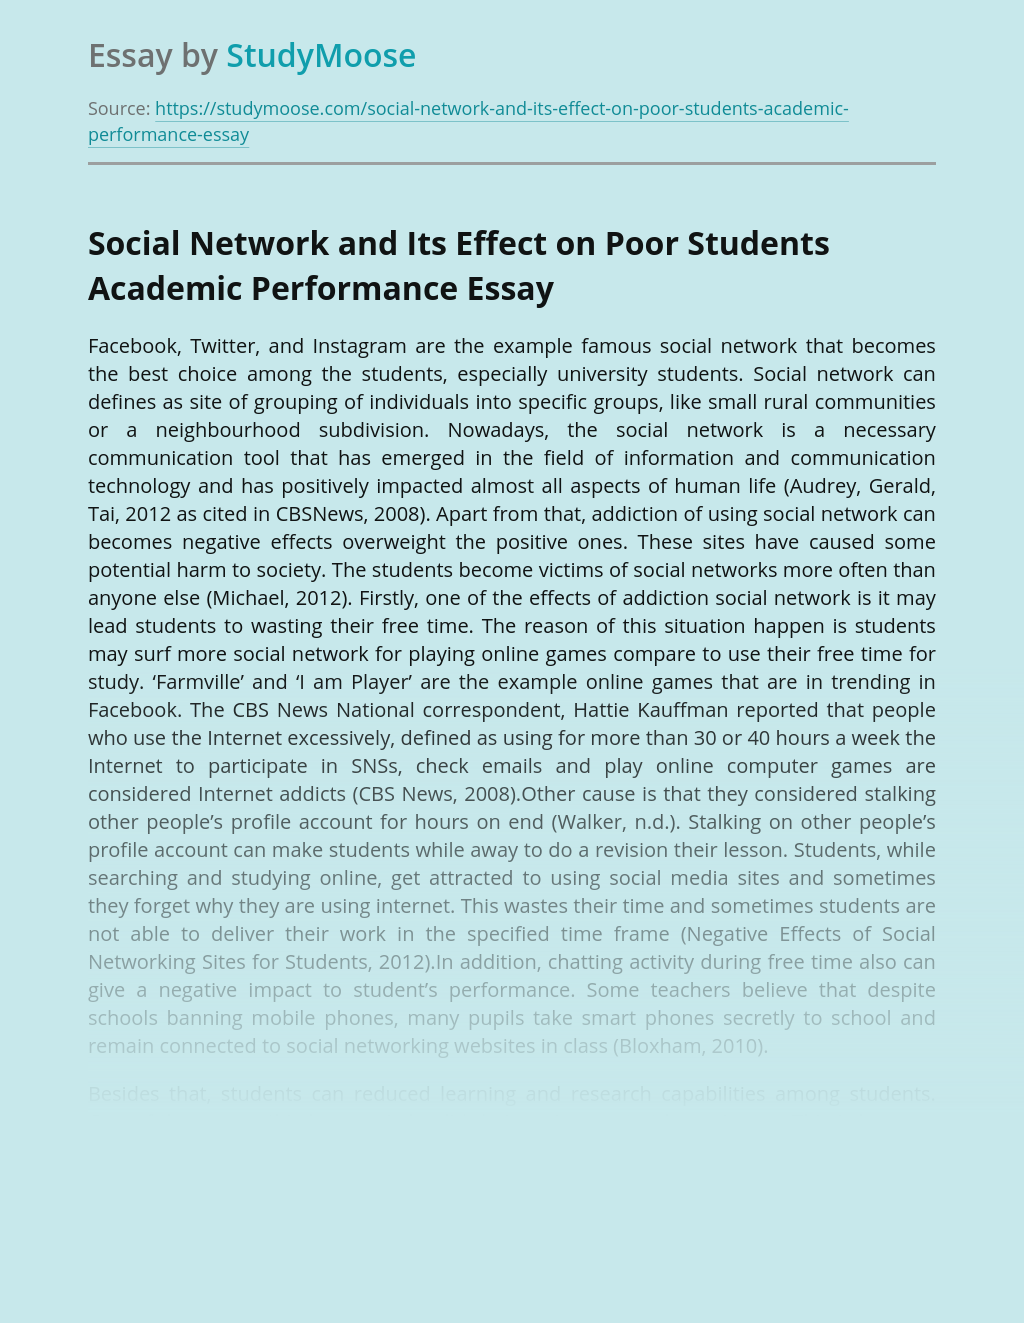 Social Network and Its Effect on Poor Students Academic Performance